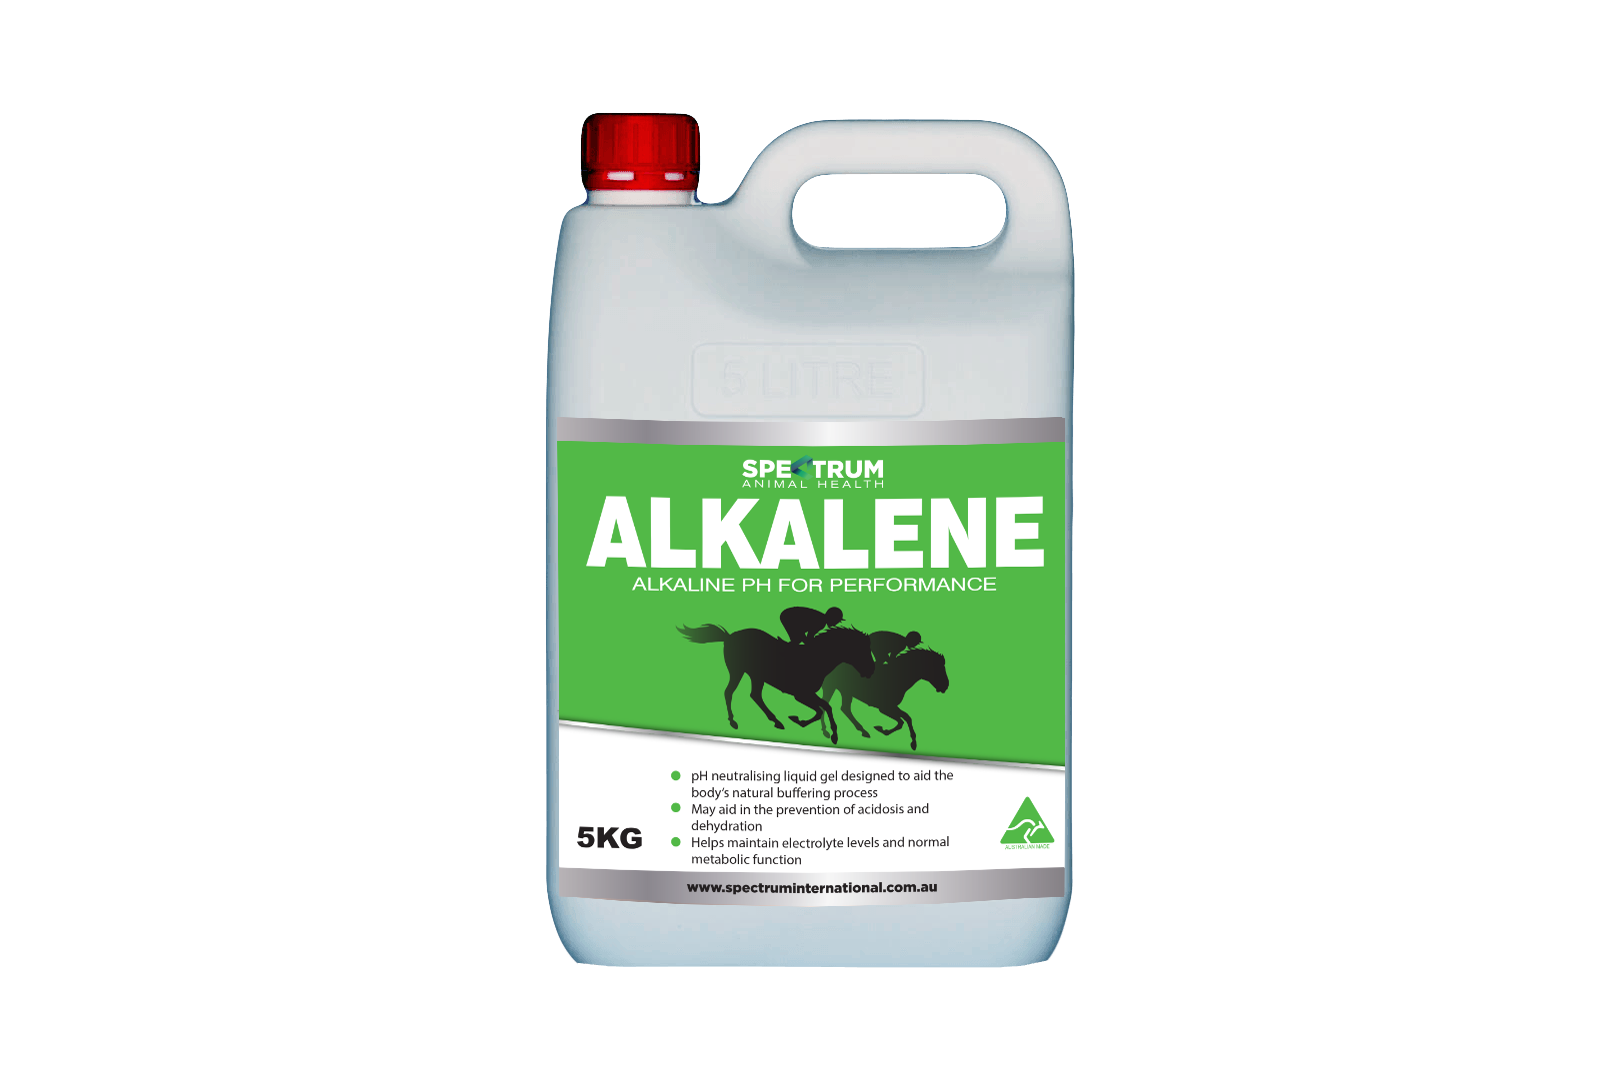 Product photo for Alkalene